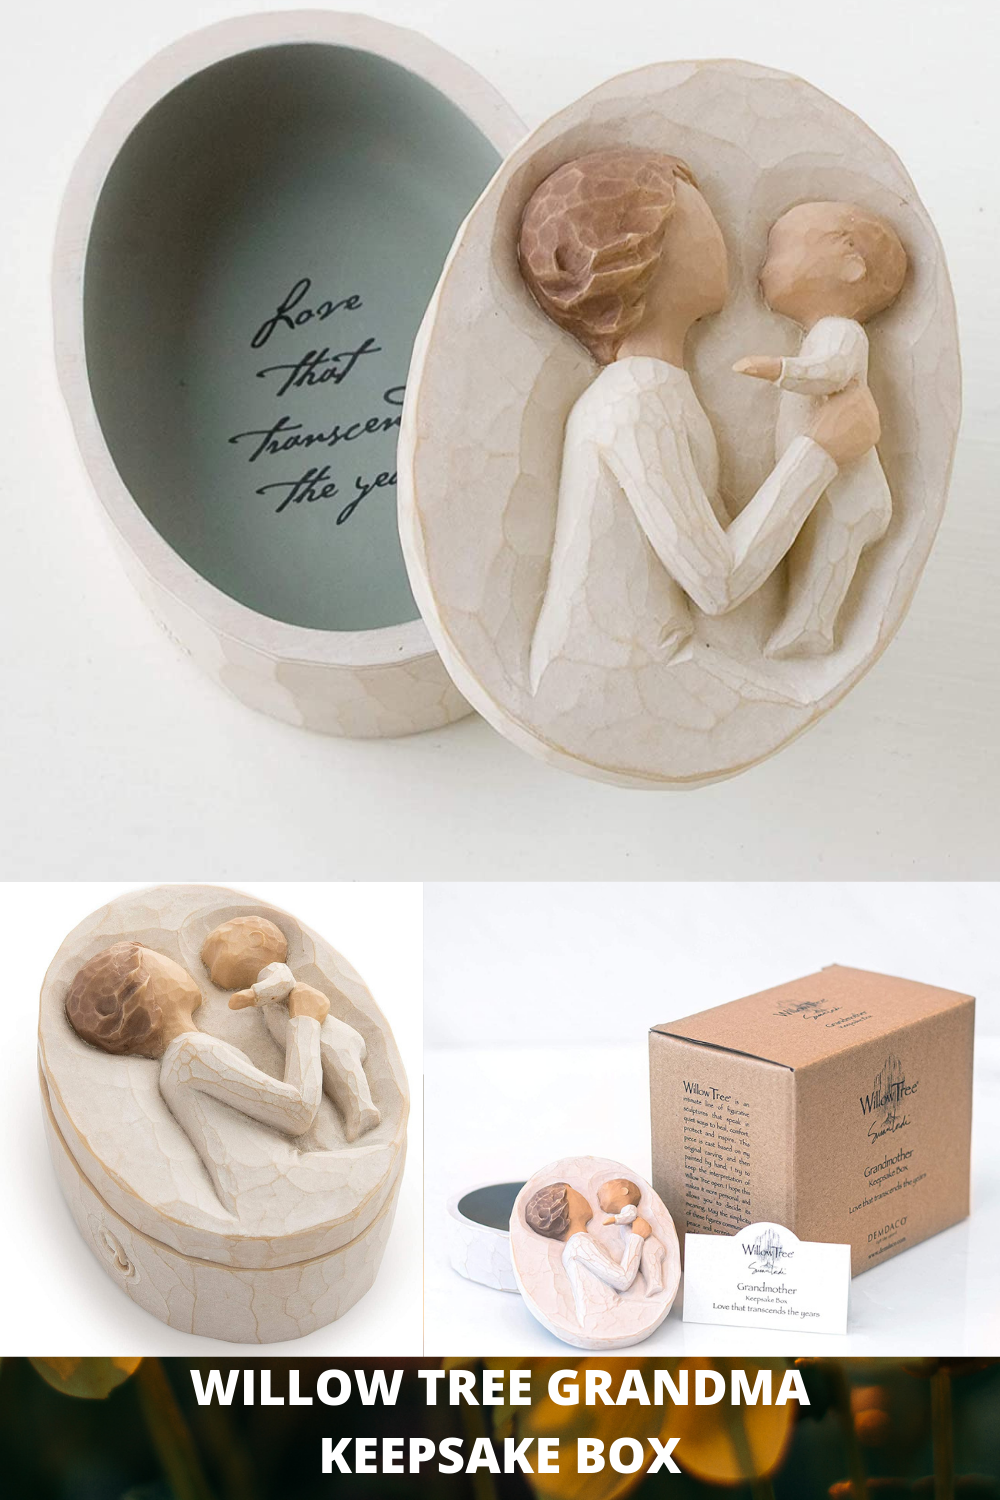 This Willow Tree piece is a hand-painted resin box with bas-relief carving on lid. Ready to display on a shelf, table. Inside, the bottom of box reveals a message of love and friendship as a hidden discovery. Packaged in fitted box ready for gift-giving. Willow Tree sculptures express love, closeness, healing, courage, hope… emotions of a life well lived. #GiftIdeasGrandma #craftedgifts #uniquegifts #grandma #giftsdiys